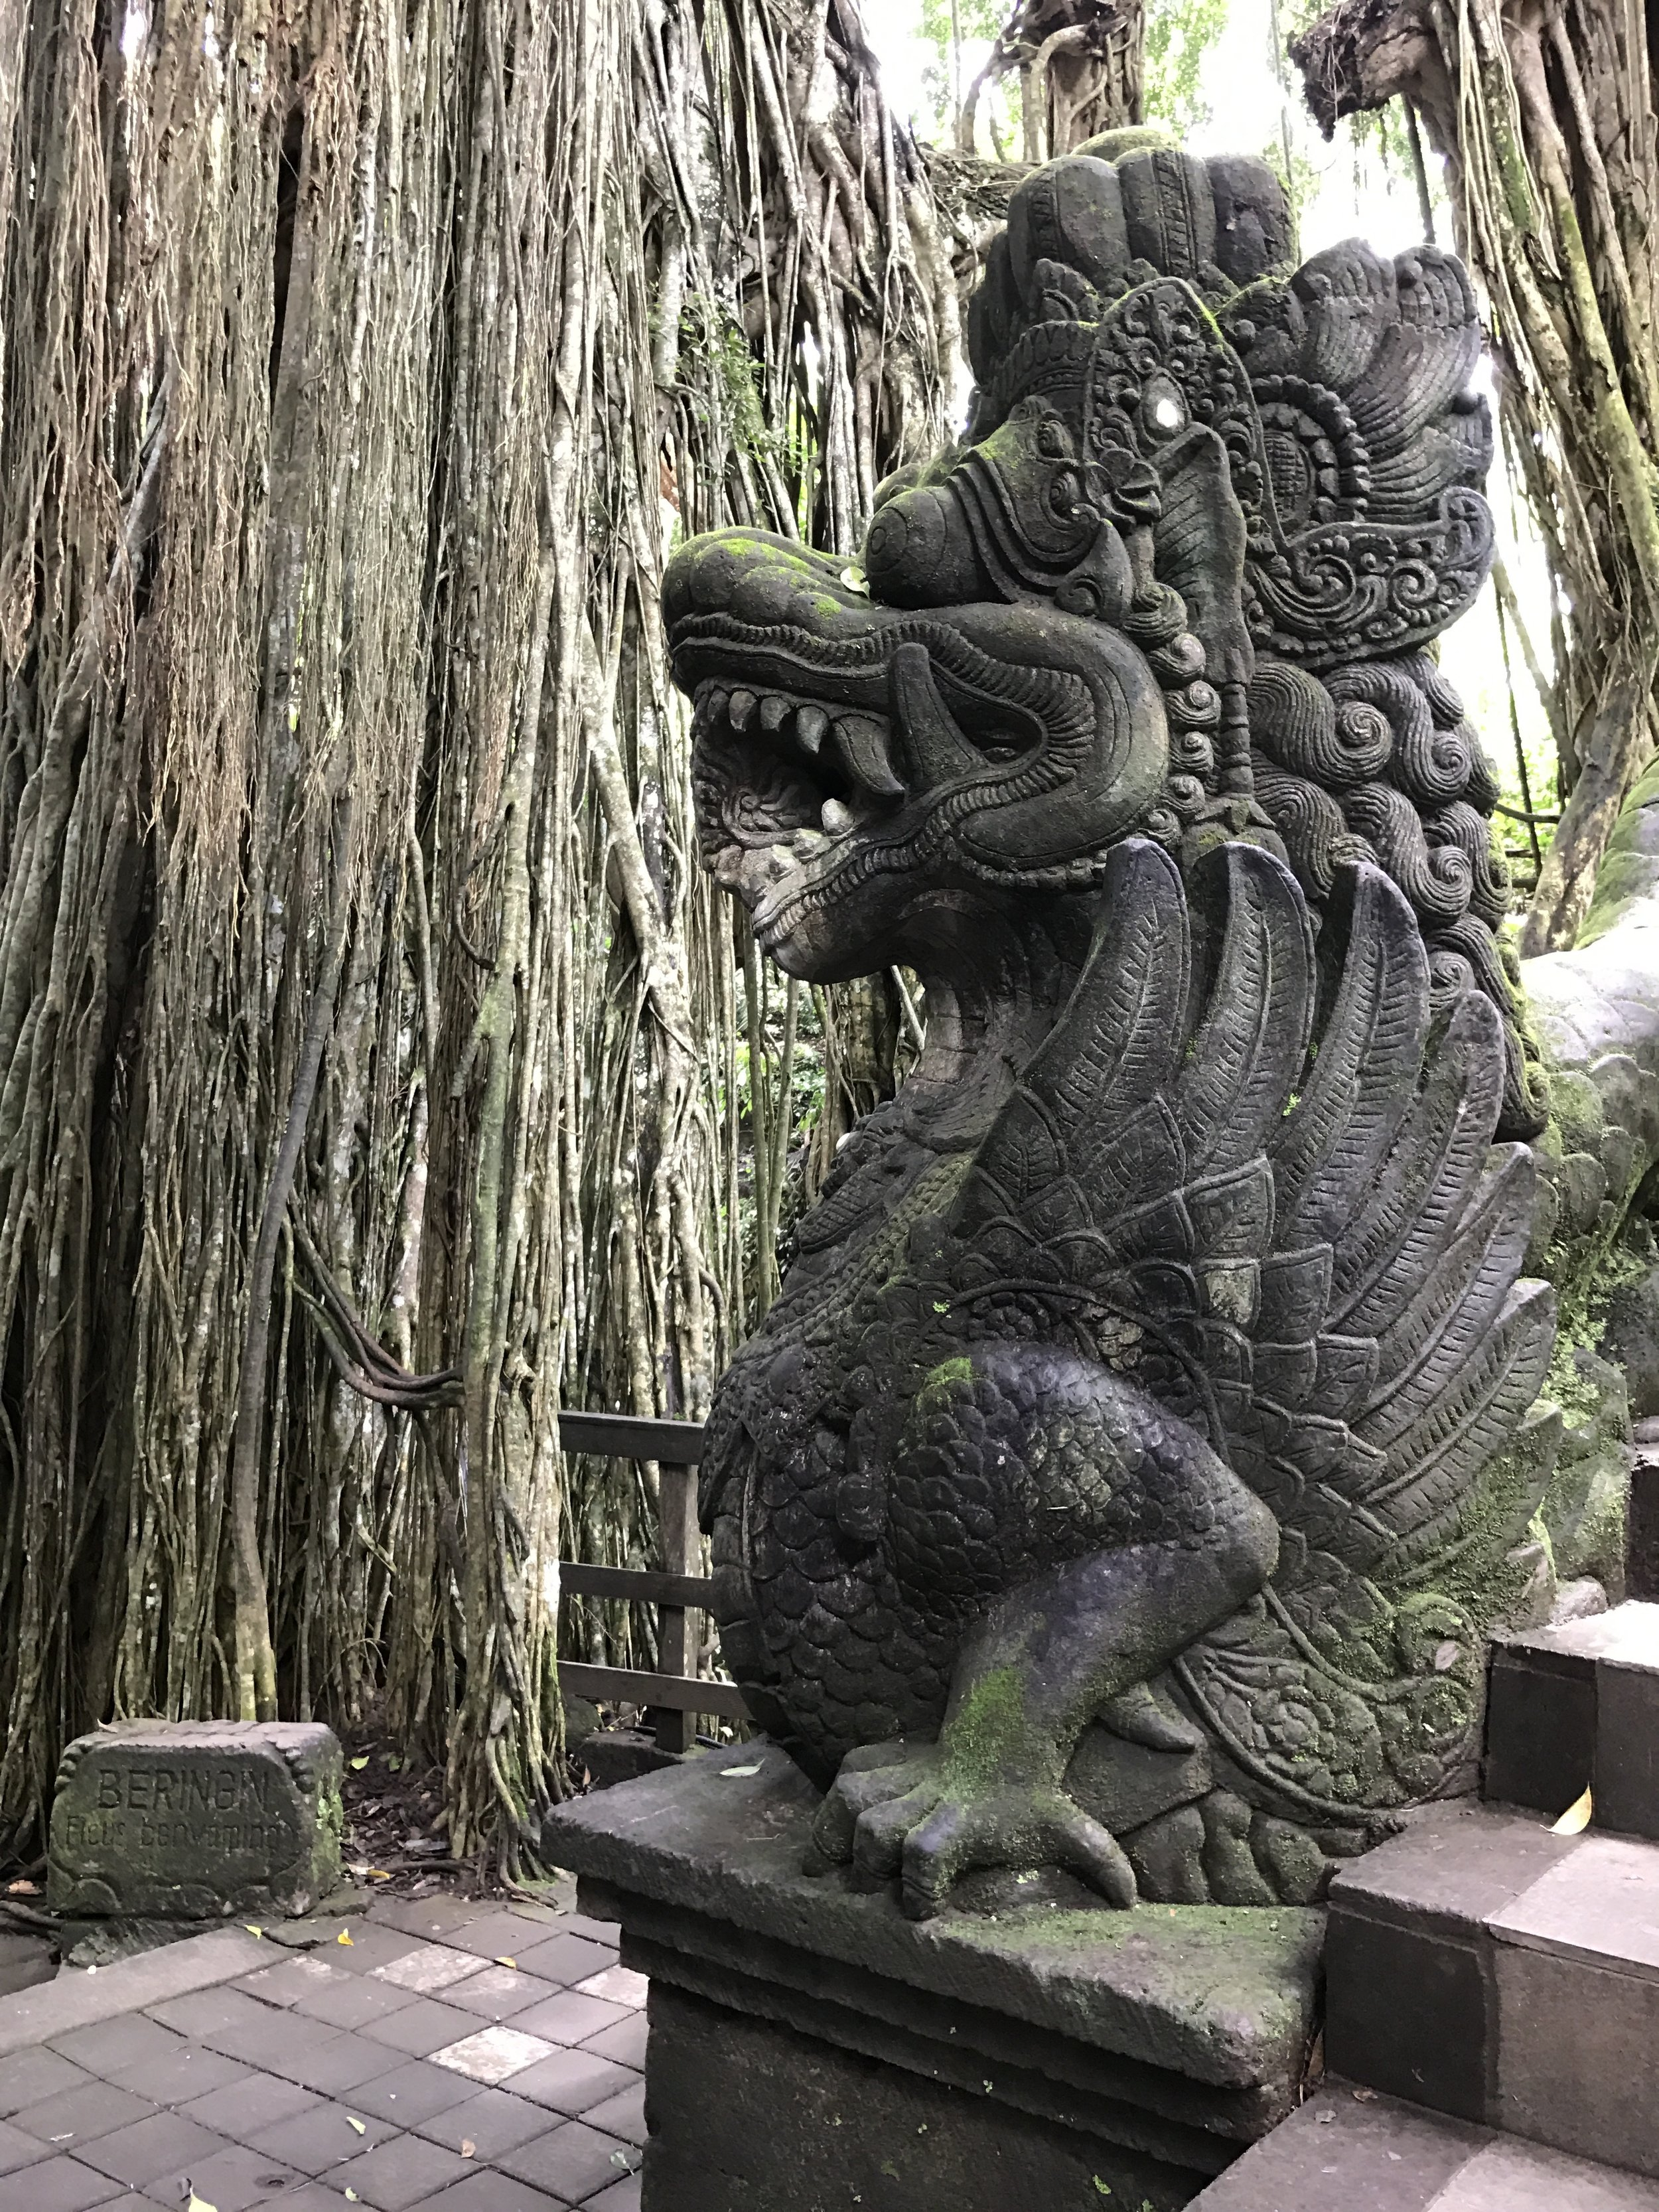 The dragon bridge at the Holy Spring Temple sits before a wall of banyan tree vines.